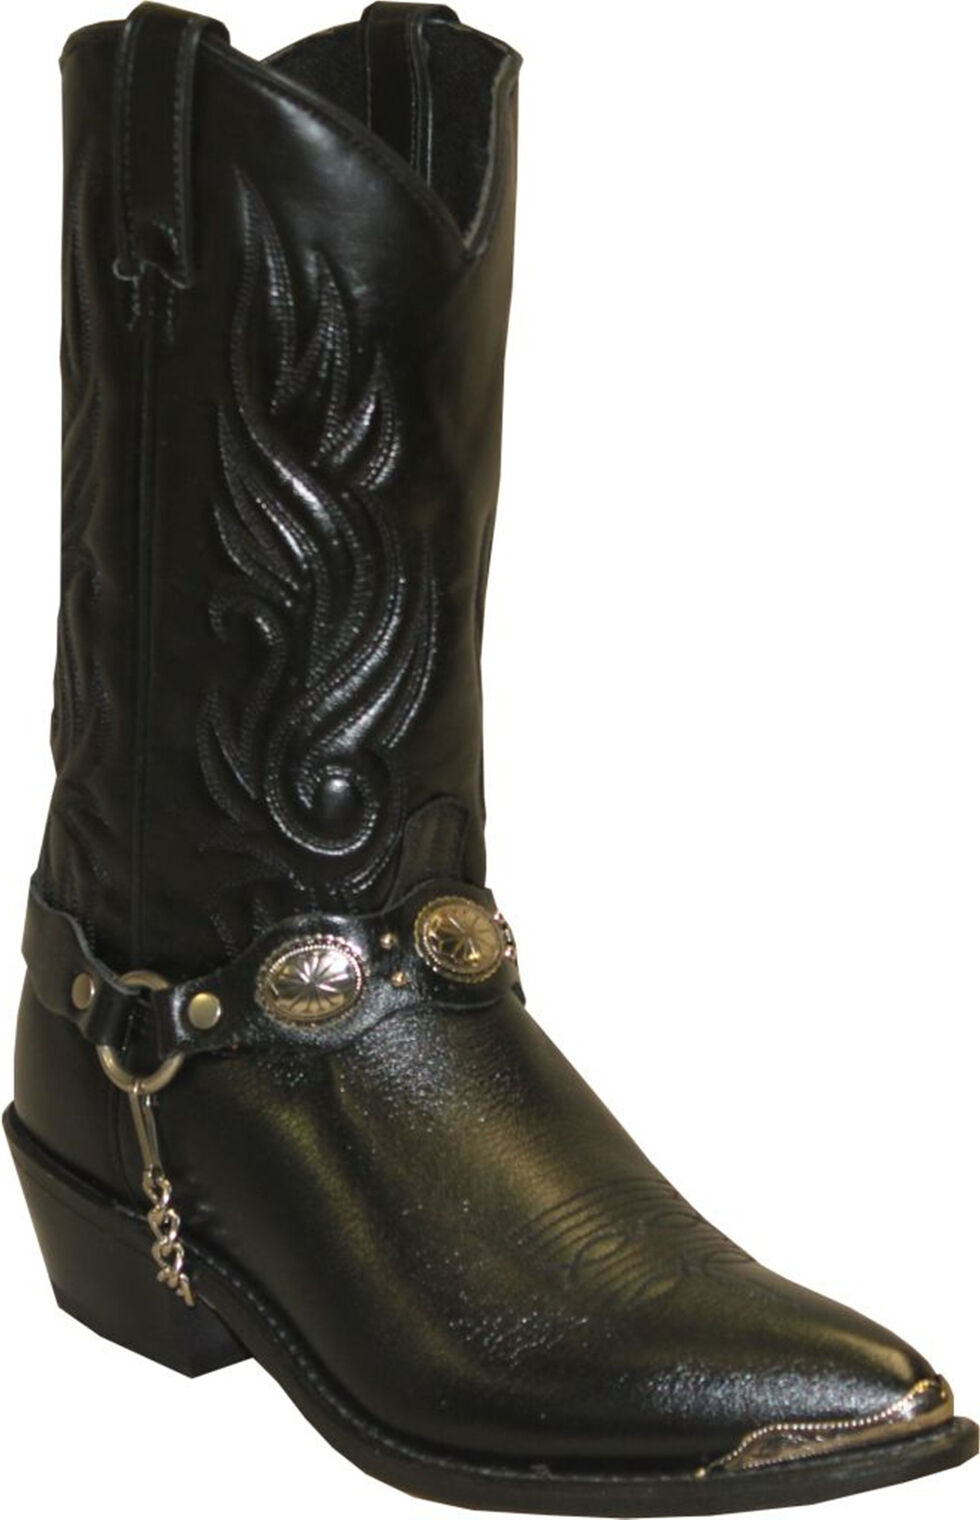 Sage by Abilene Black with Concho Strap Western Boots, Black, hi-res